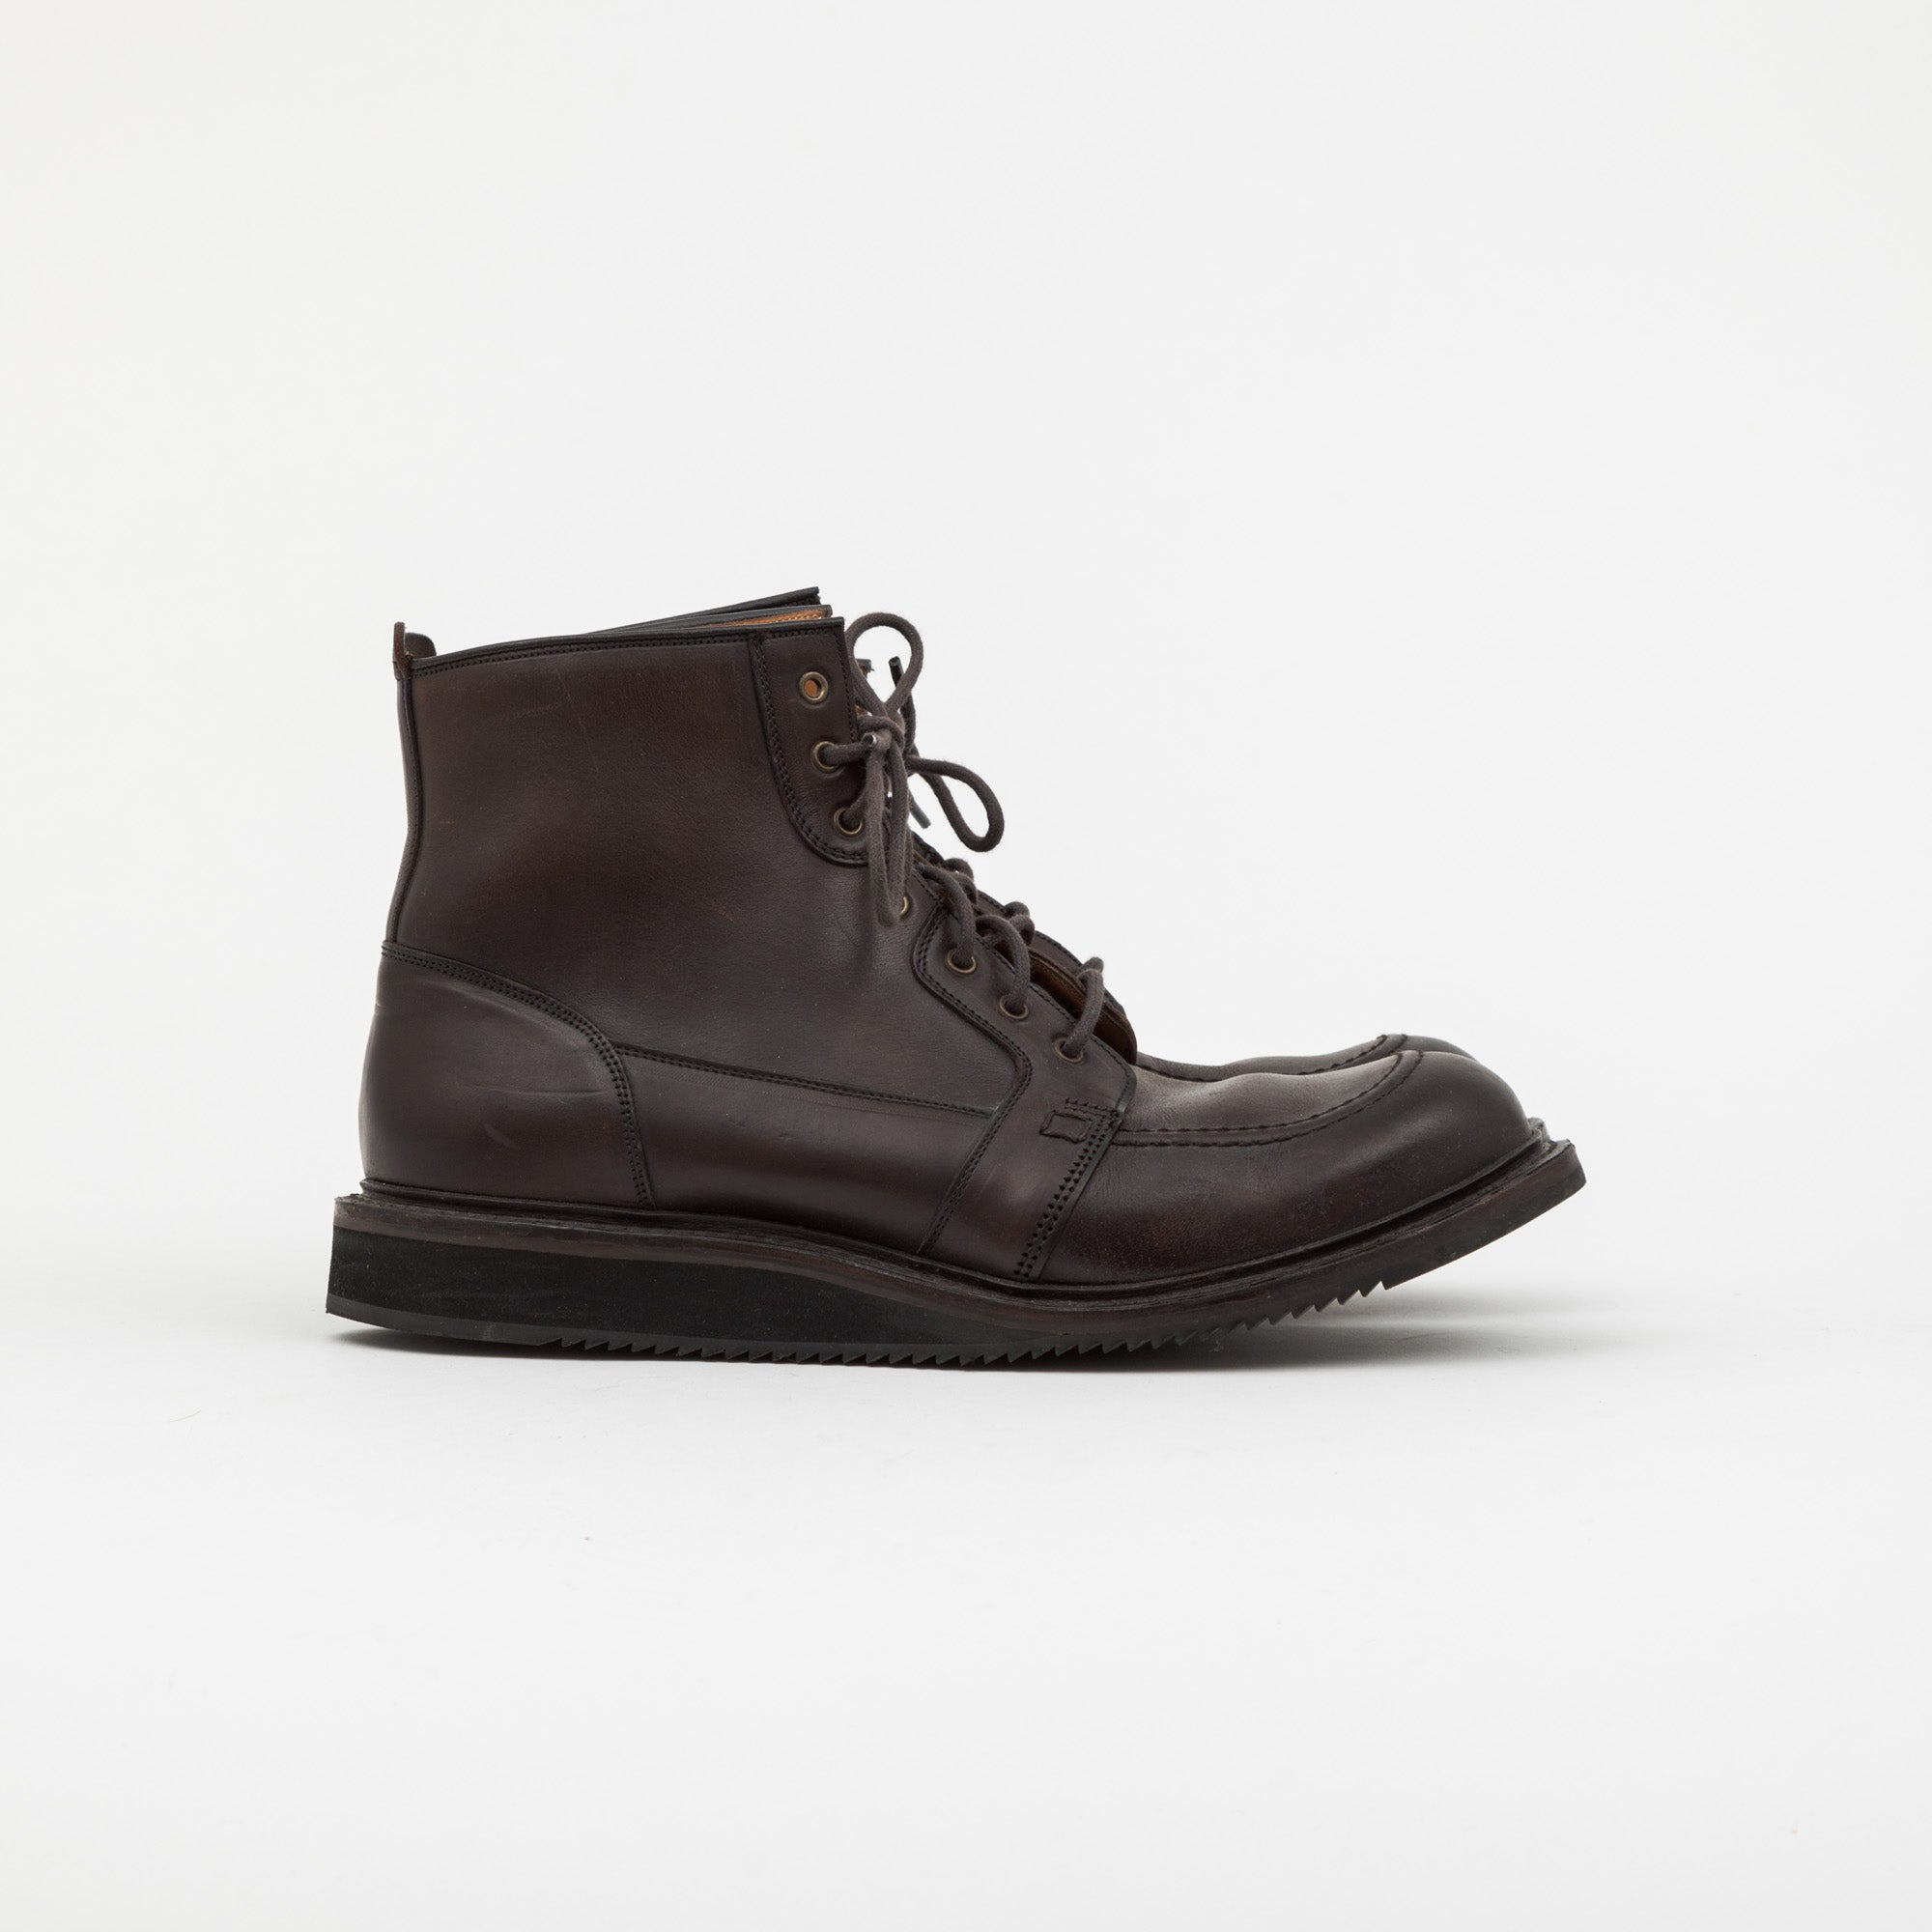 Joseph Cheaney & Sons Gateshead Apron Derby Boot